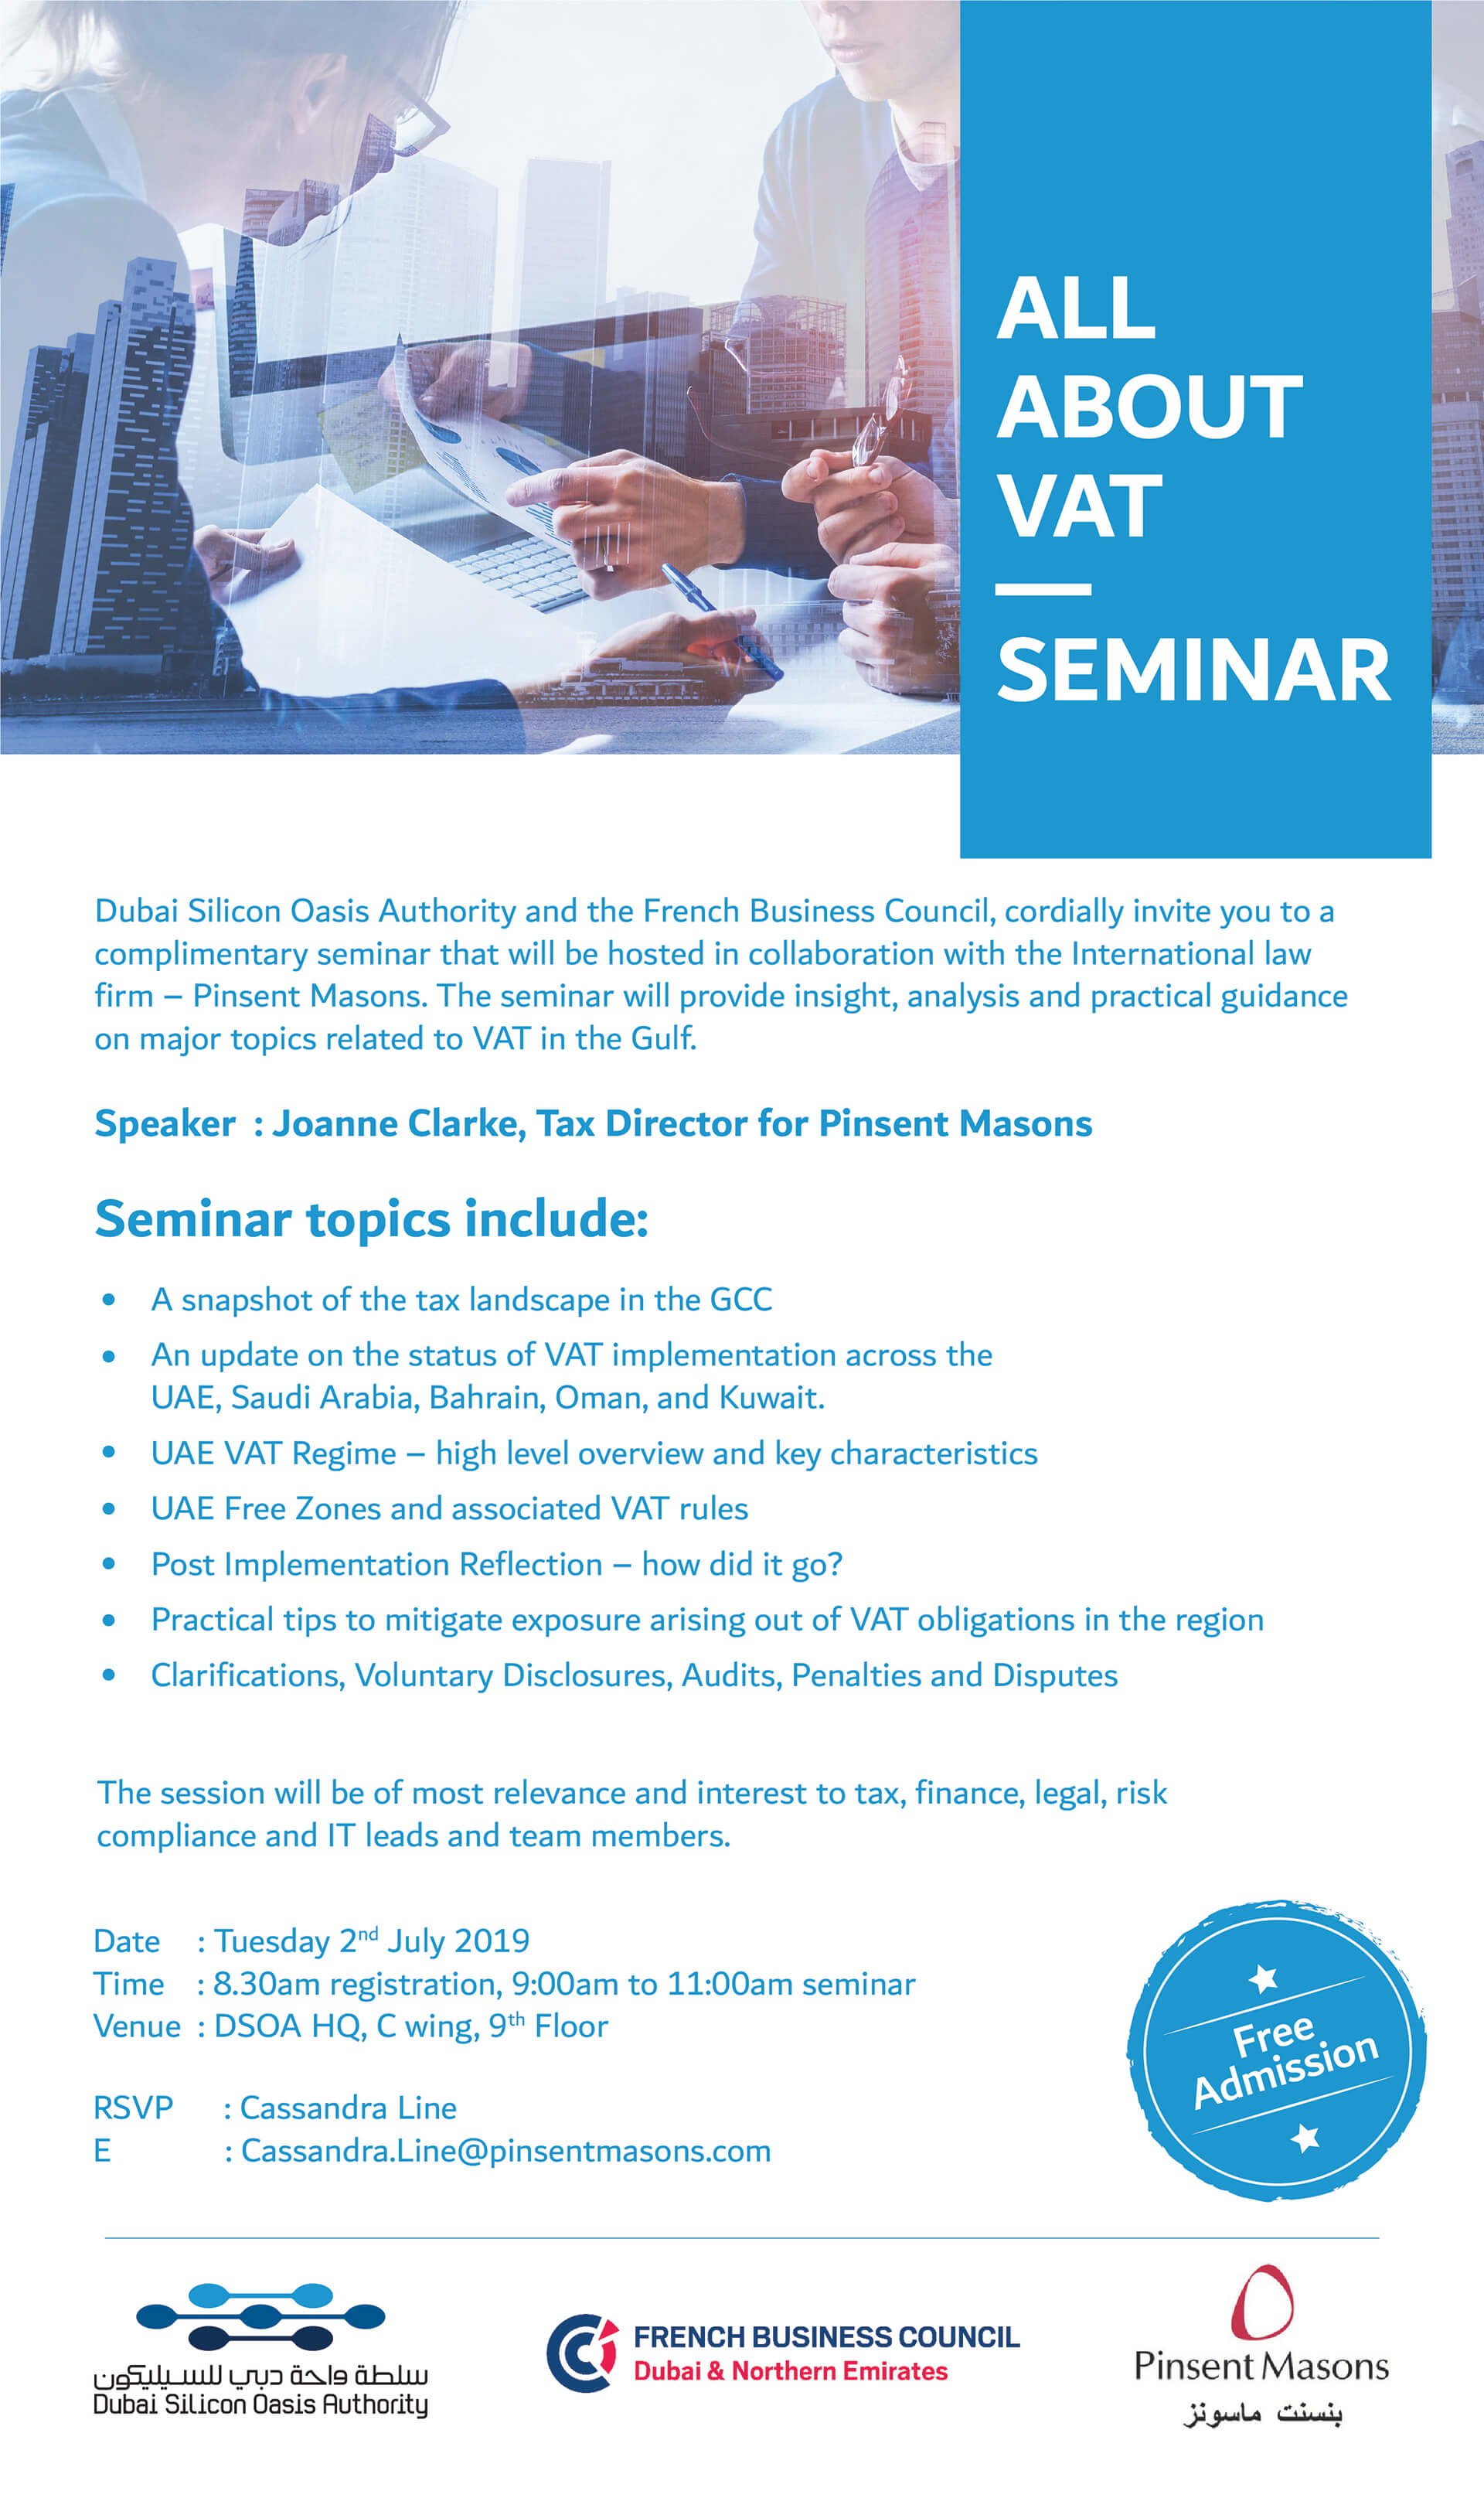 All About VAT Seminar